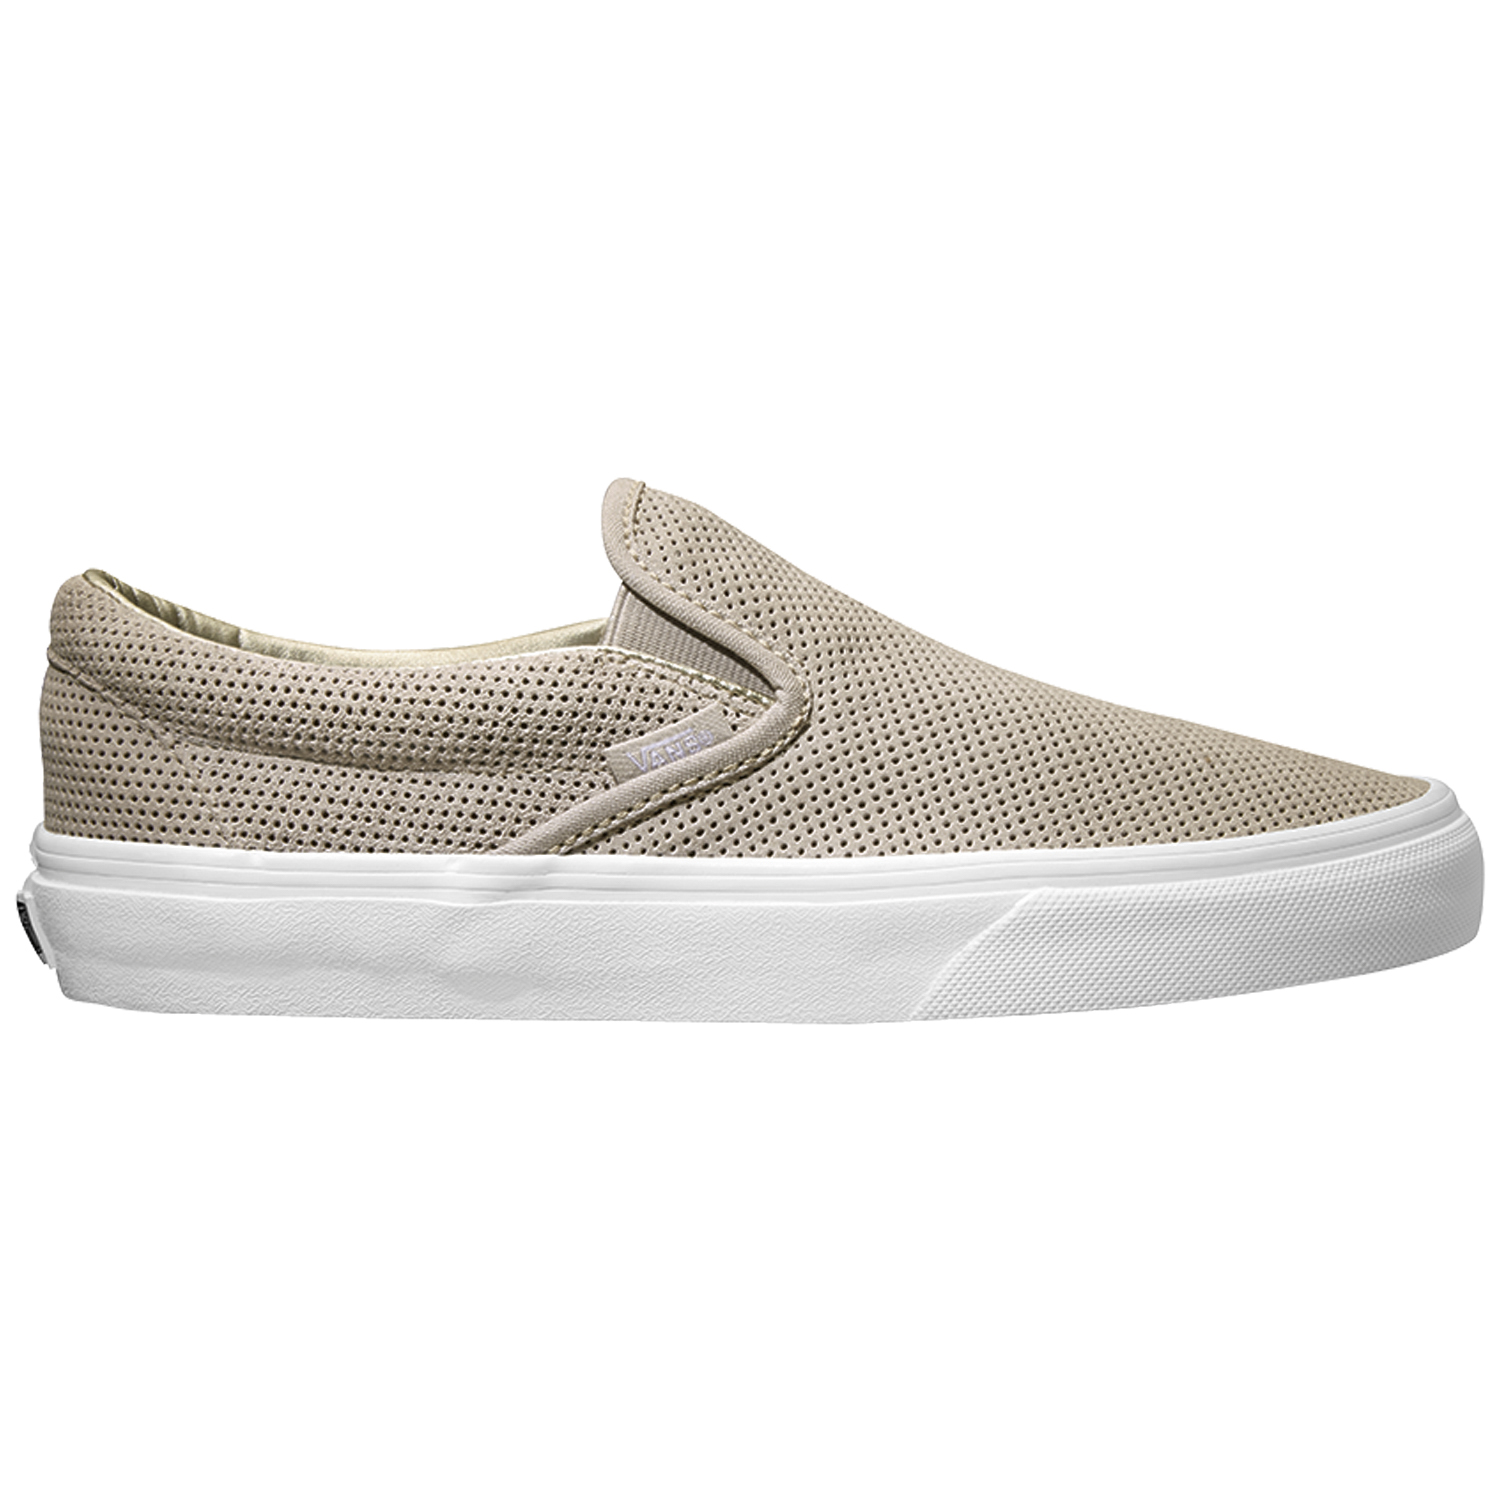 vans-classic-slip-on-perf-suede-silver-cloud-true-white-139-90